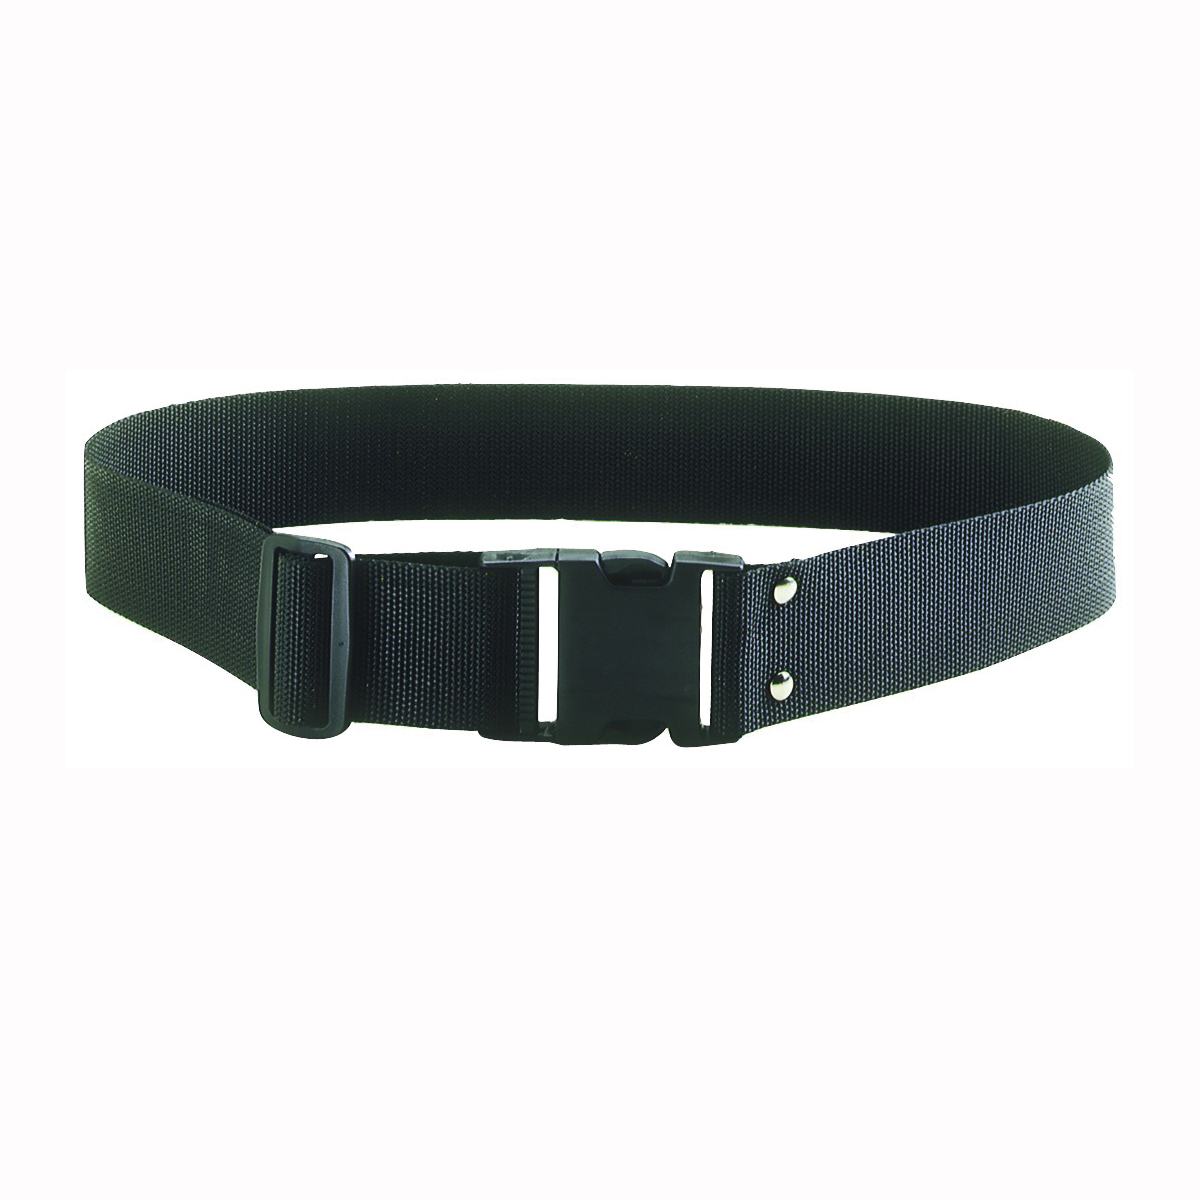 Picture of CLC 3505 Work Belt, 29 to 46 in Waist, Poly, Black